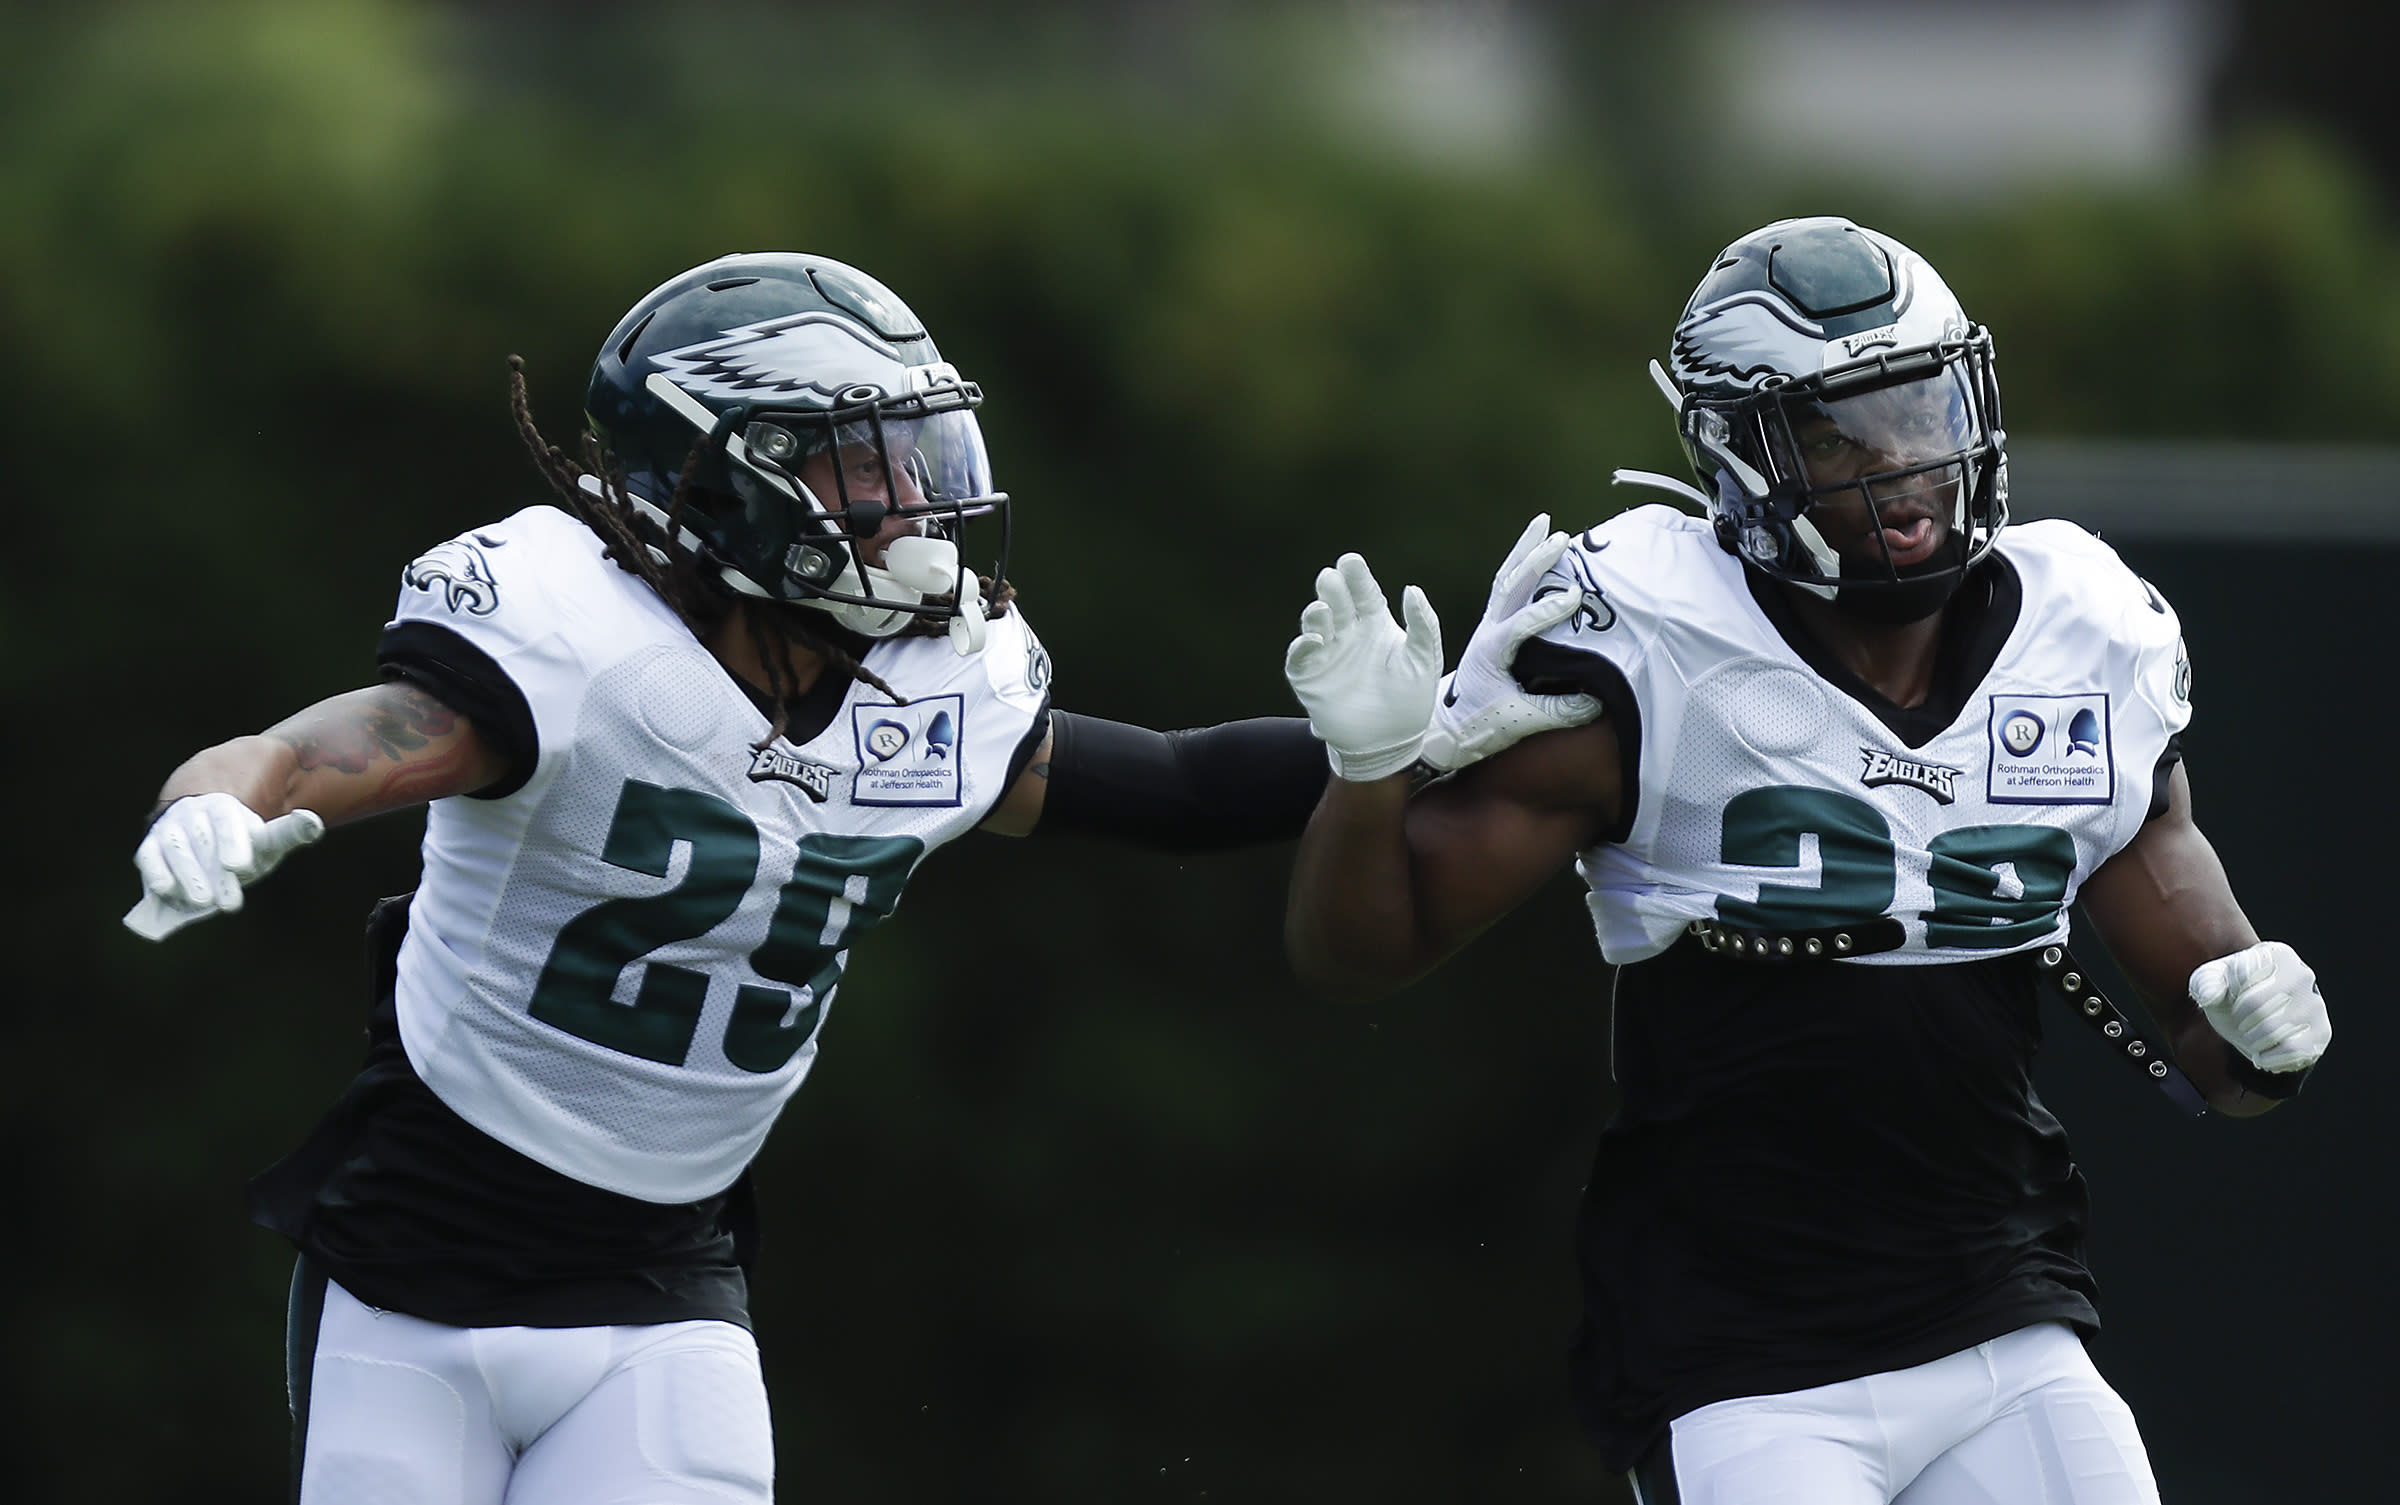 Philadelphia Eagles cornerback Avonte Maddox, left, and safety Rudy Ford work on coverage drills during an NFL football training camp practice in Philadelphia, Monday, Aug. 24, 2020. (Yong Kim/Pool Photo via AP)